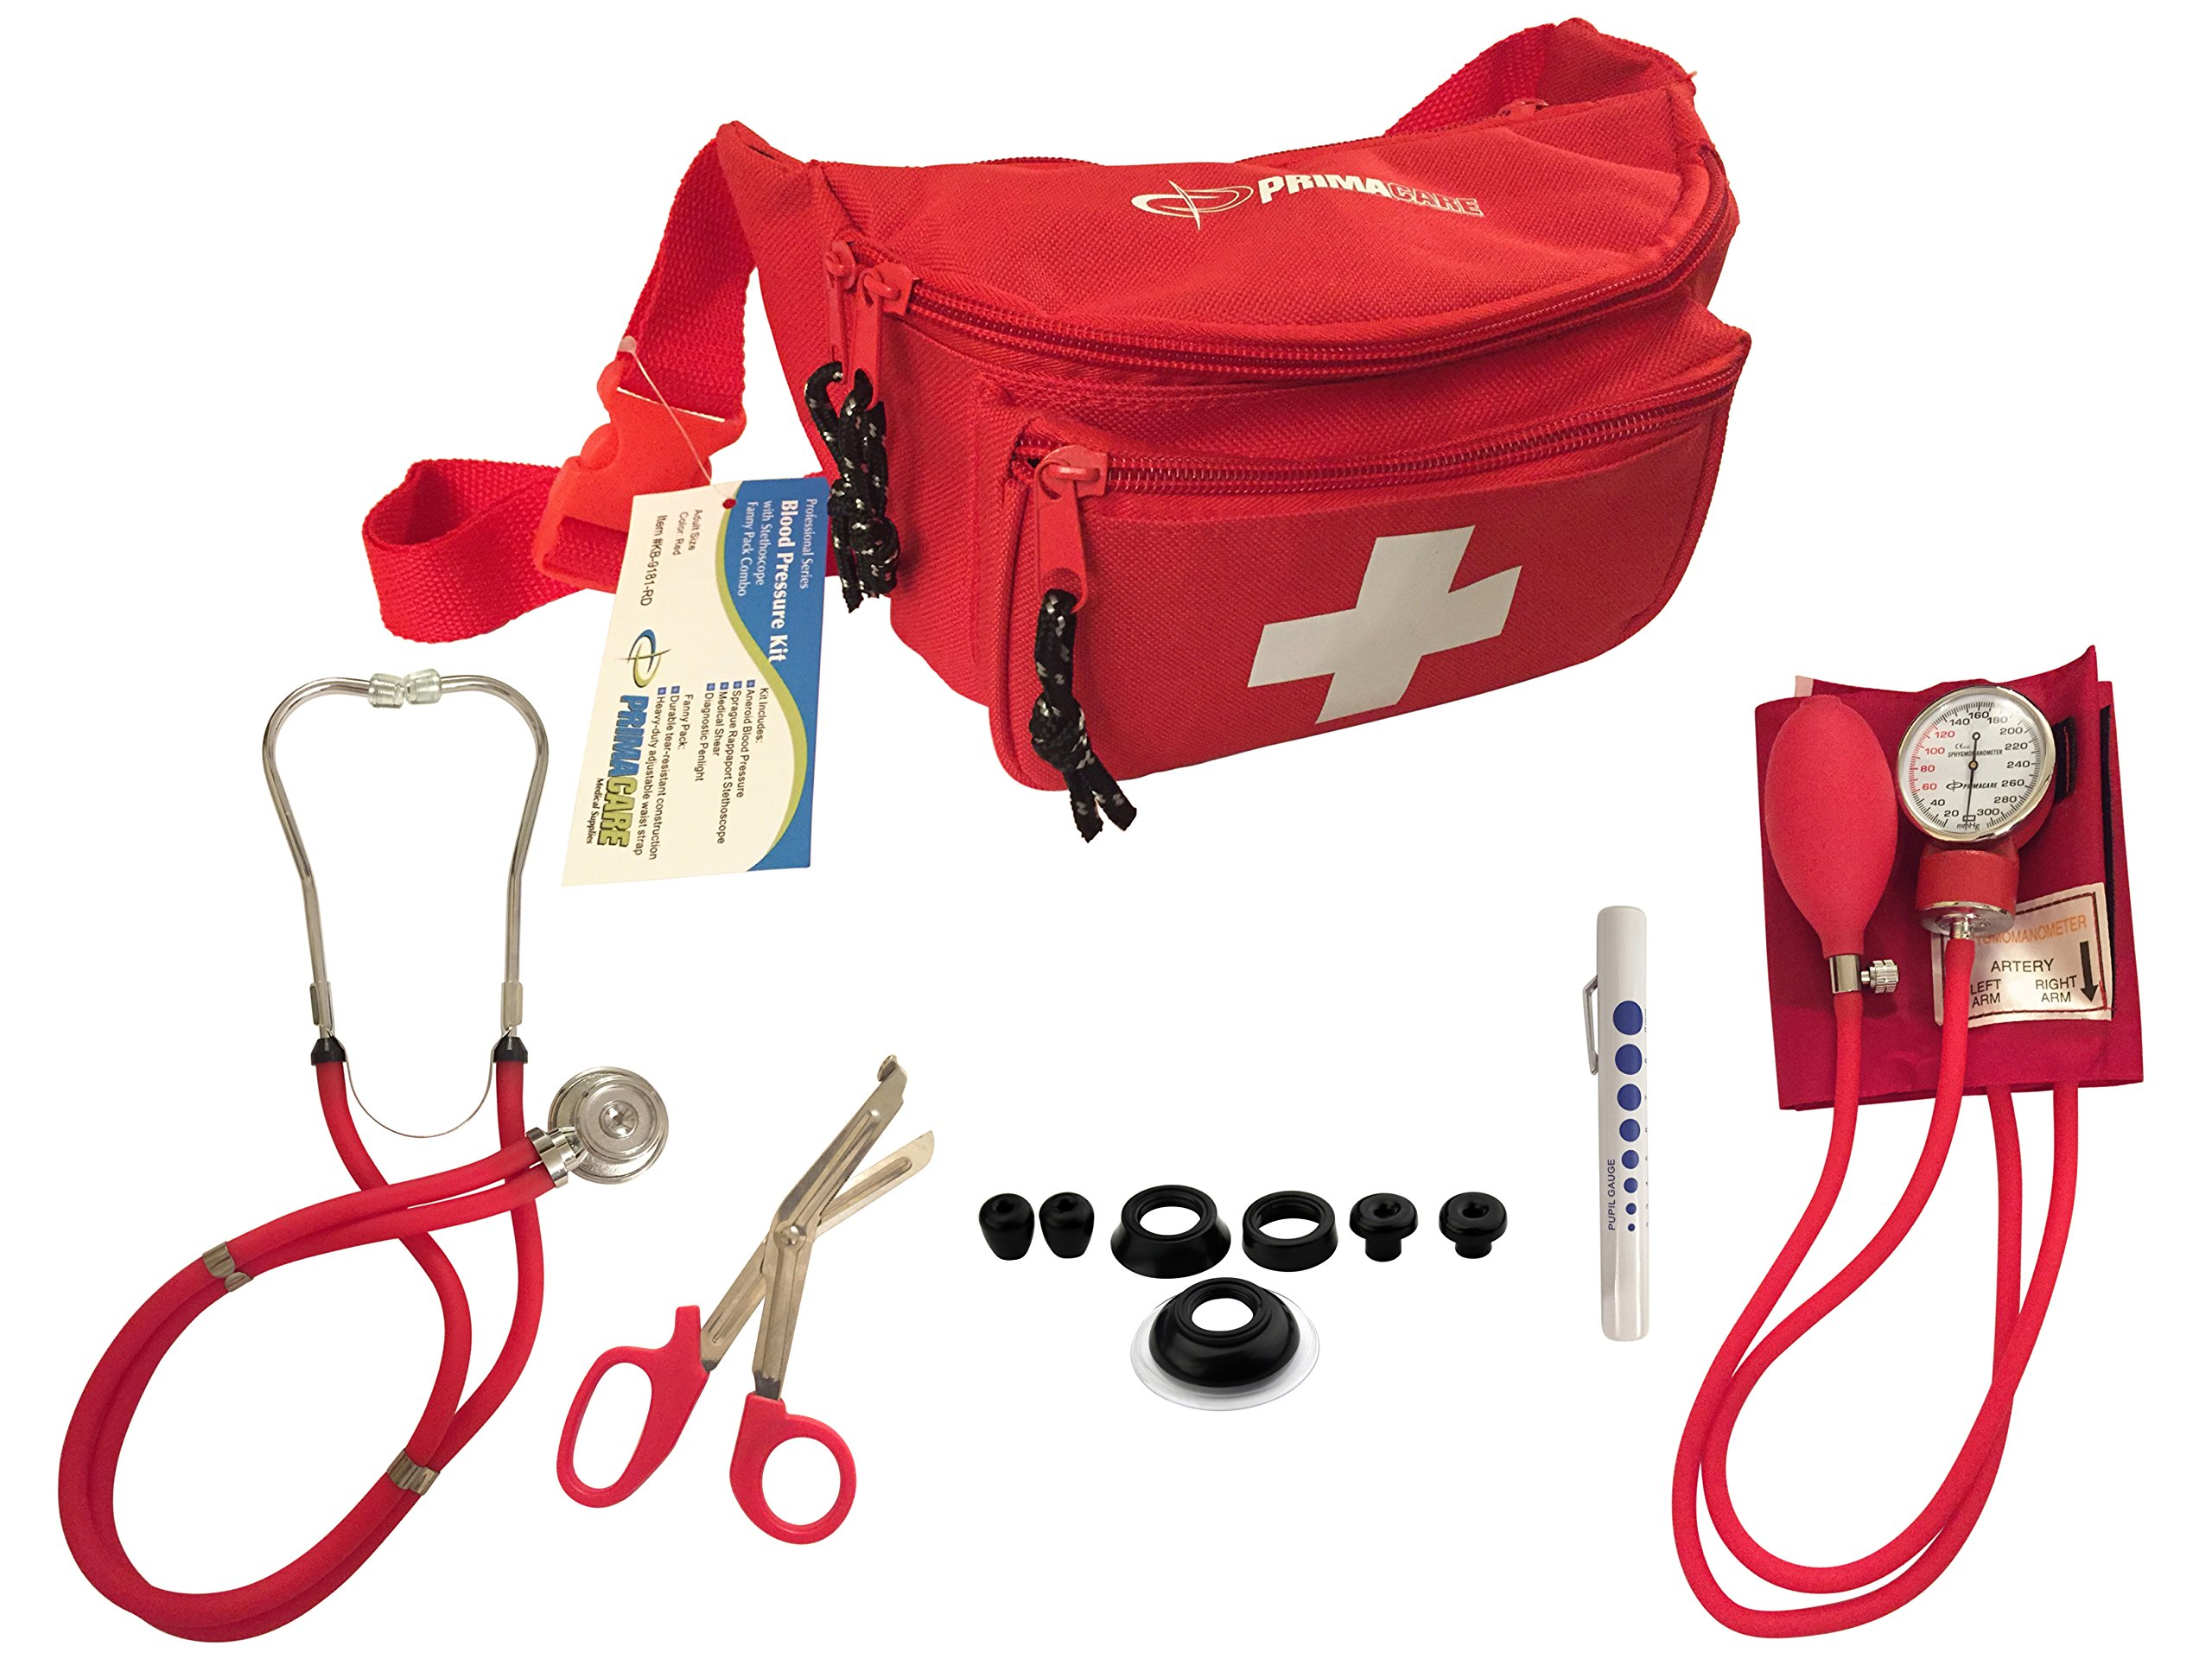 Primacare KB-9181-RD Professional Series Blood Pressure Kit with Sprague Rappaport Style Stethoscope Fanny Pack Combo, Red